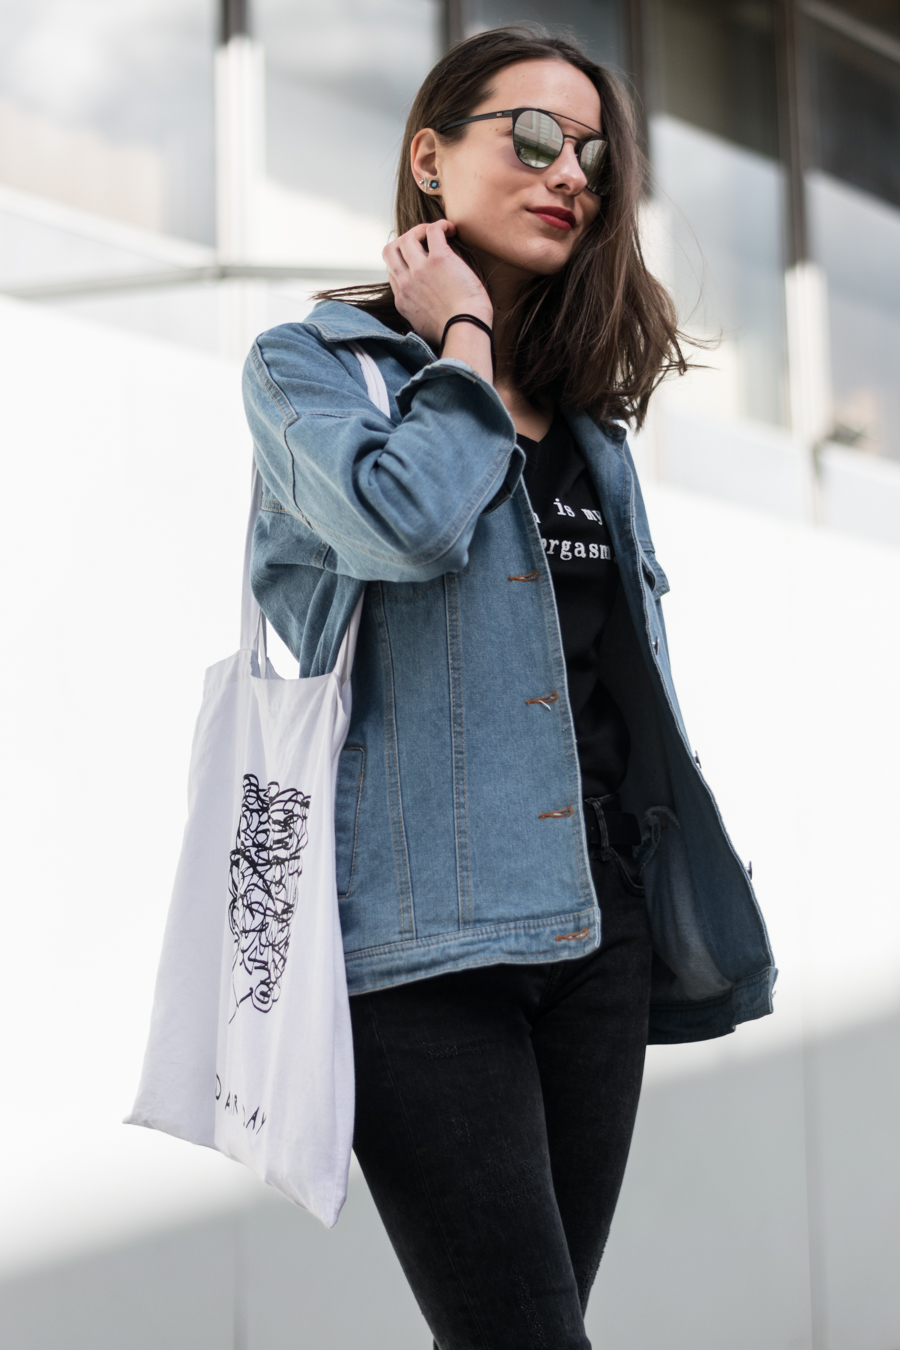 Oversized denim jacket with a pair of converse sneakers a cool tote bag and silver sunglasses, outfit by a fashion blogger fashnfudge.